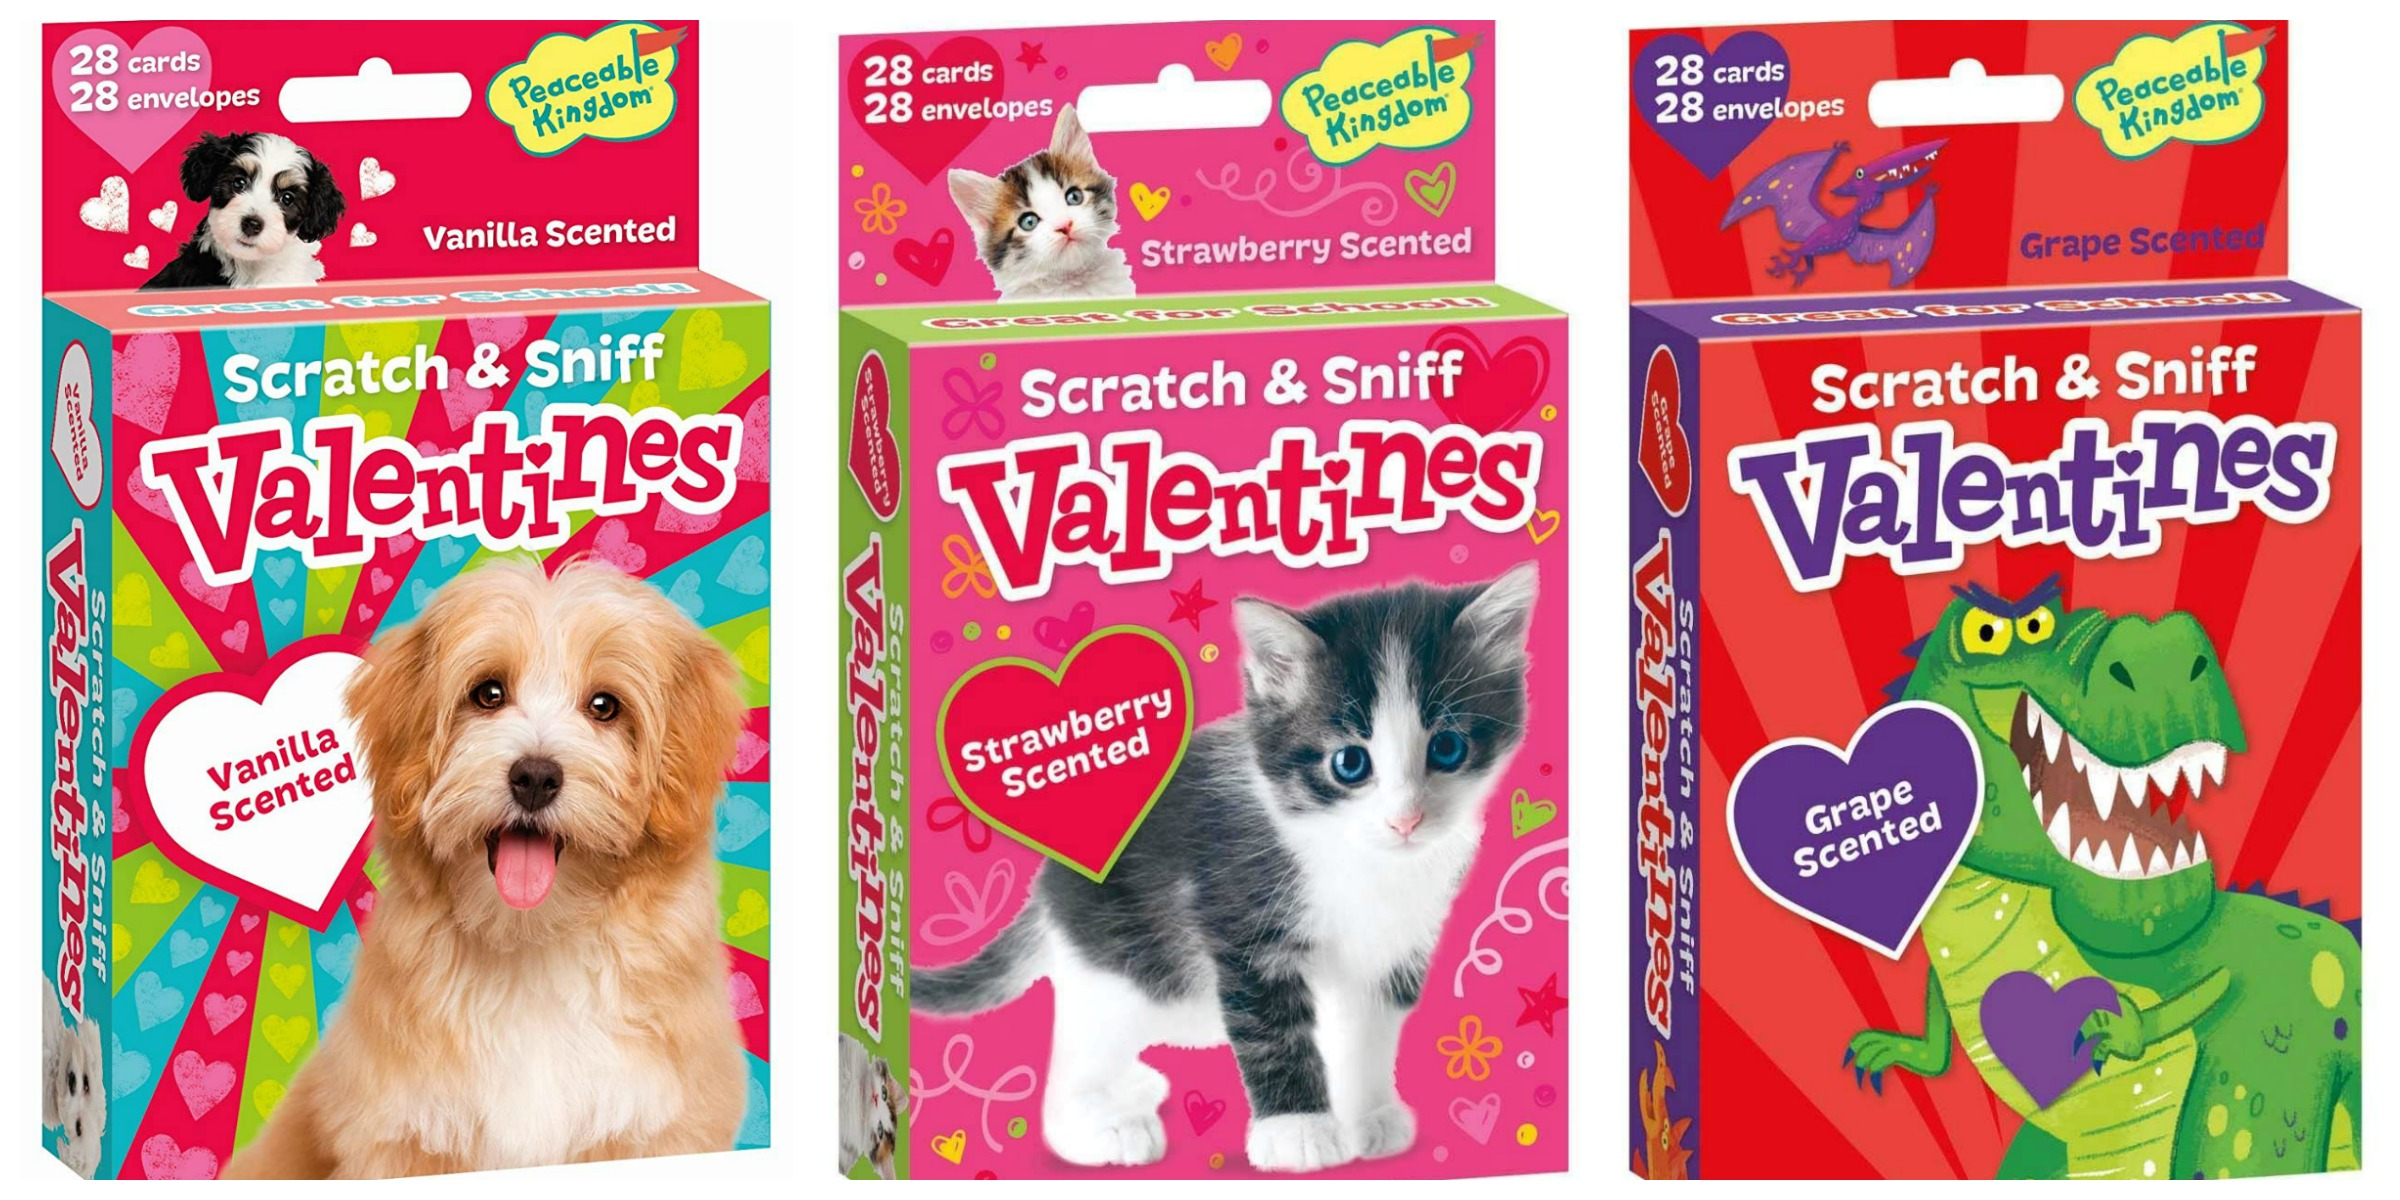 Scratch and Sniff Valentines – 28 Card Pack – as low as $4.99!